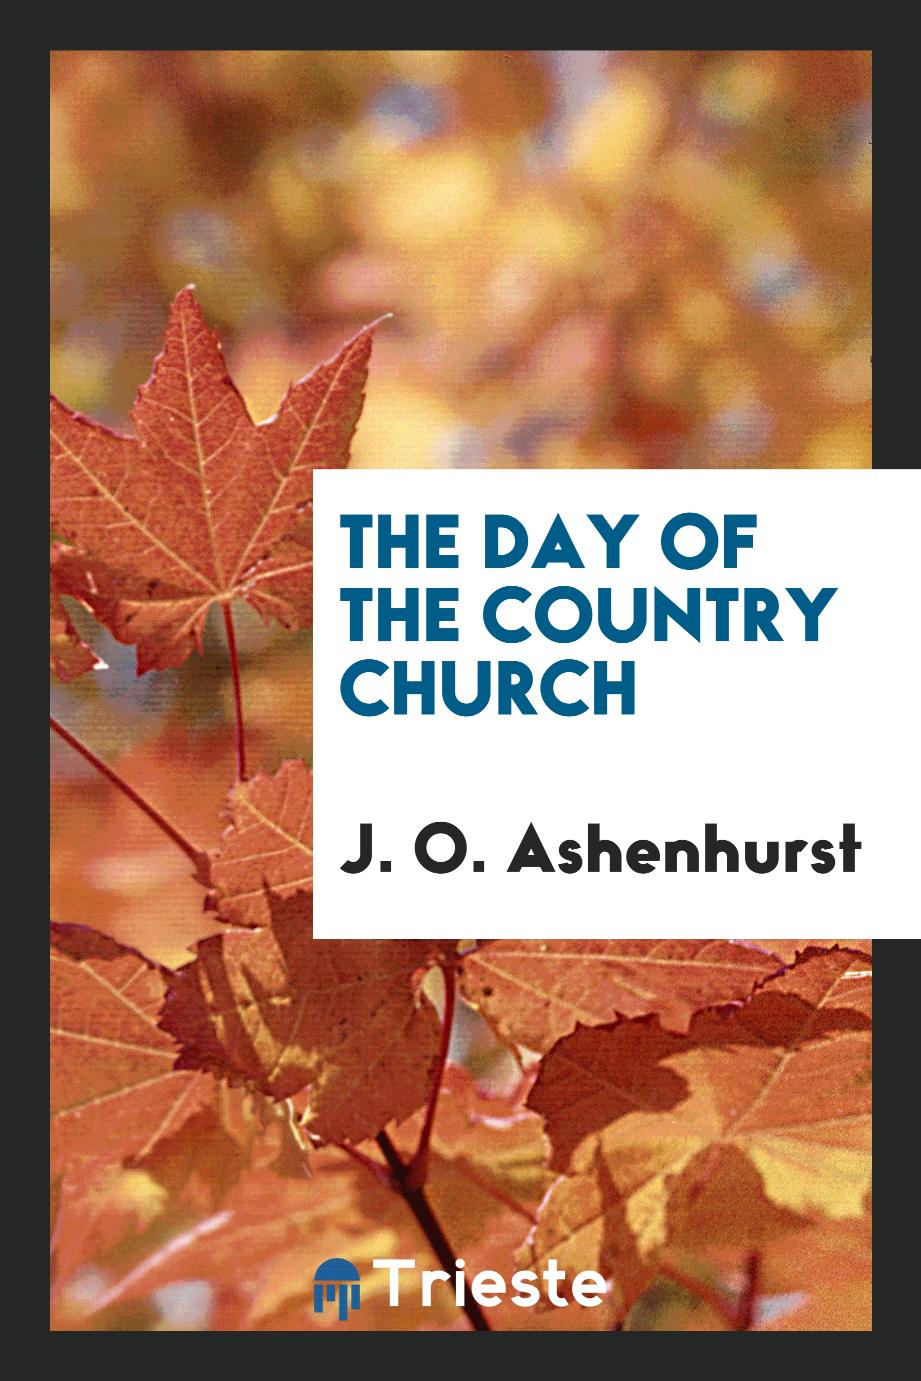 The Day of the Country Church